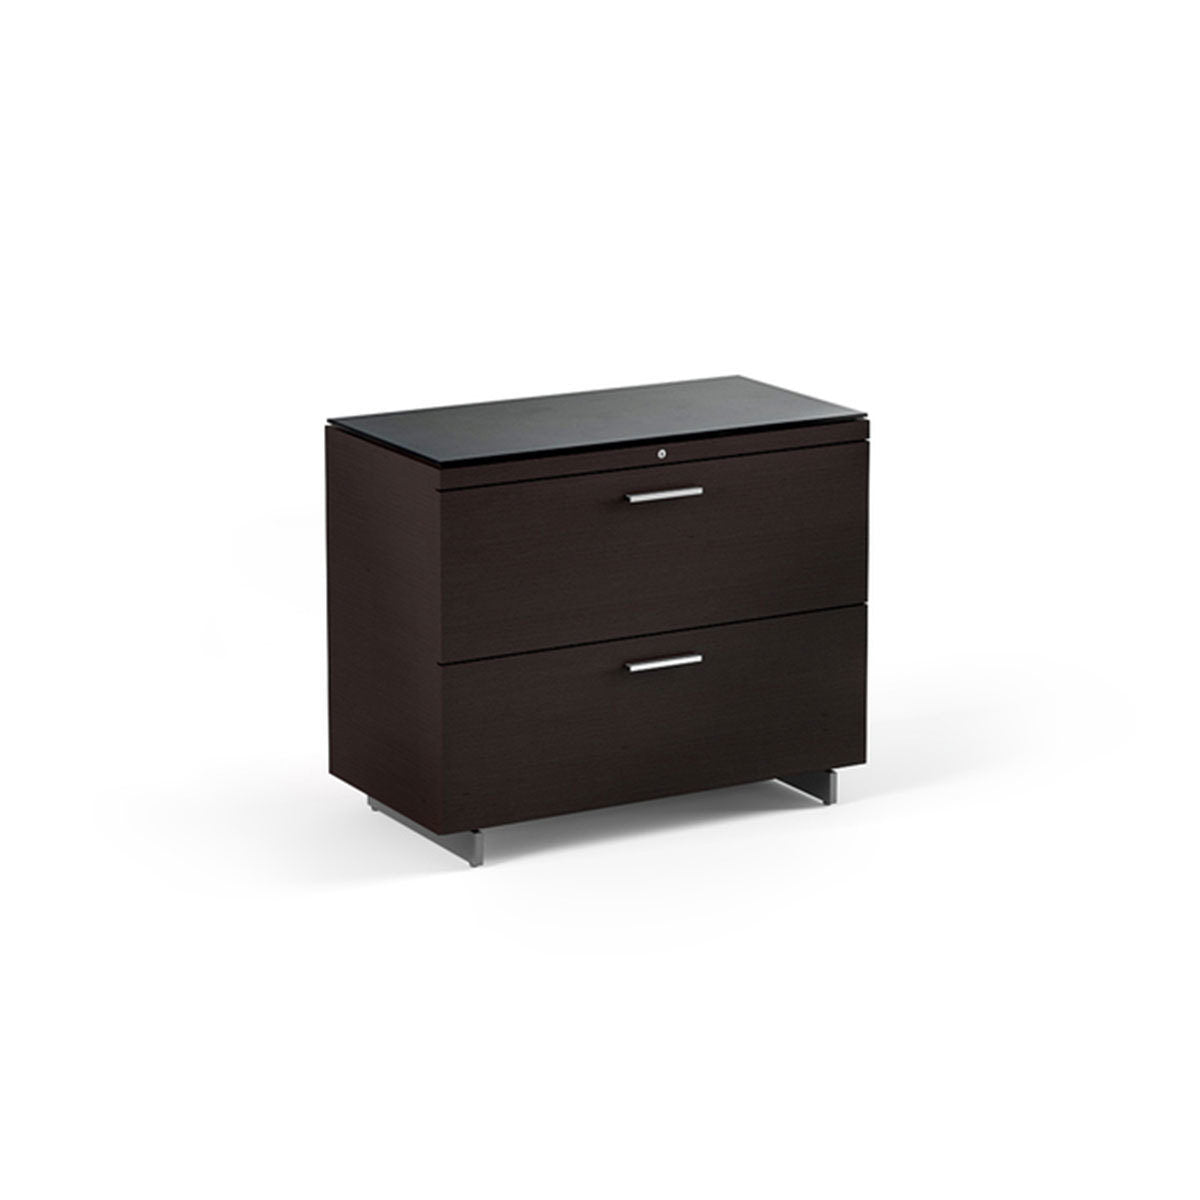 Sequel 6016 File Cabinet